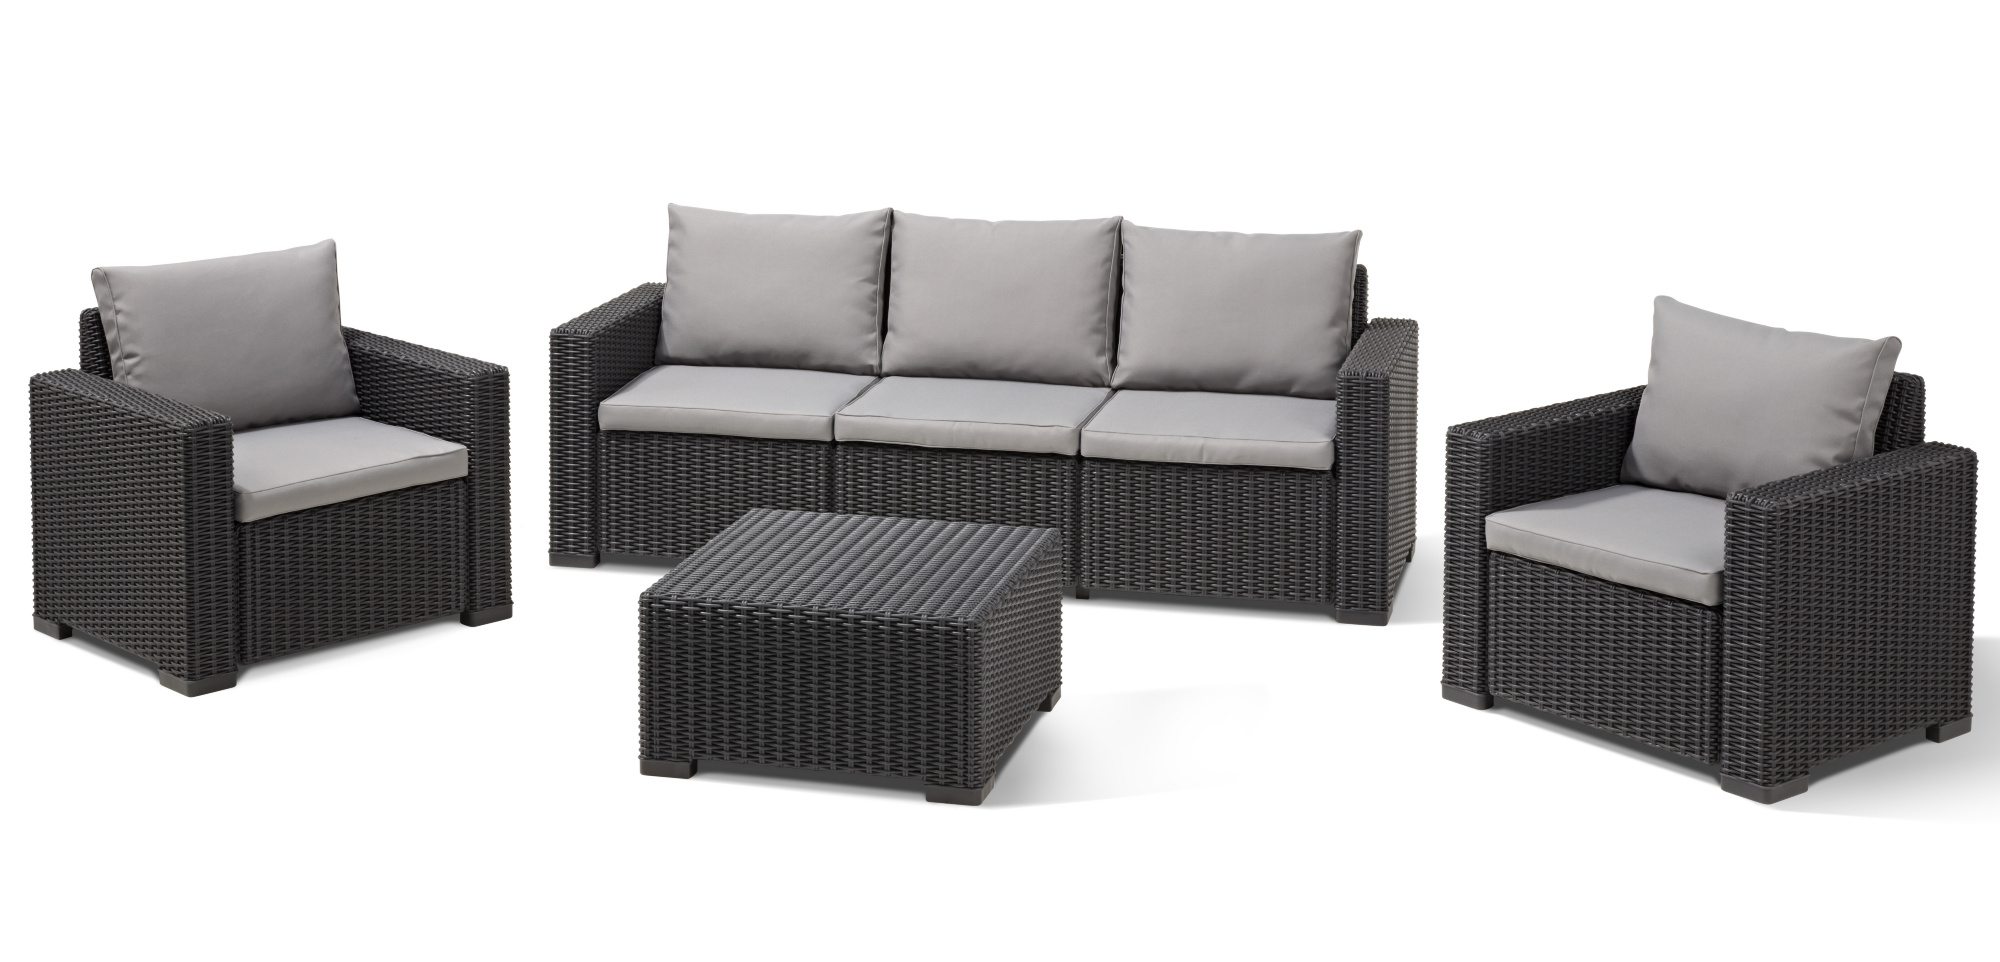 Lounge Sofa Allibert Allibert California Lounge Set Graphite Three Seater